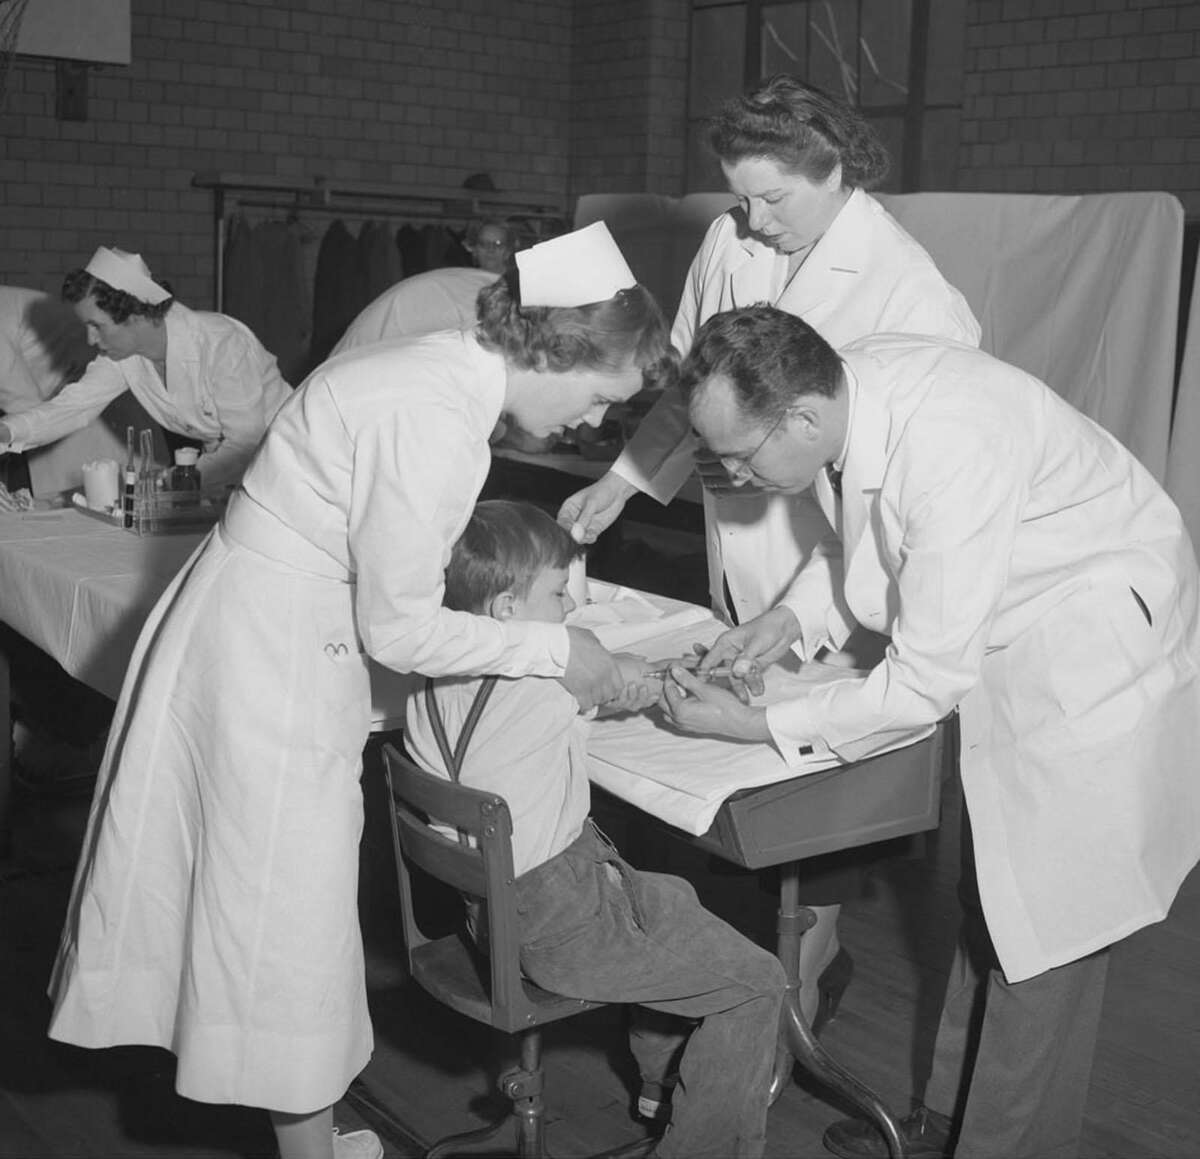 Dr. Jonas Salk, right, the Pittsburgh scientist who developed the polio vaccine, administers an injection to a boy at Arsenal Elementary School in Pittsburgh, Pennsylvania, Feb. 23, 1954.